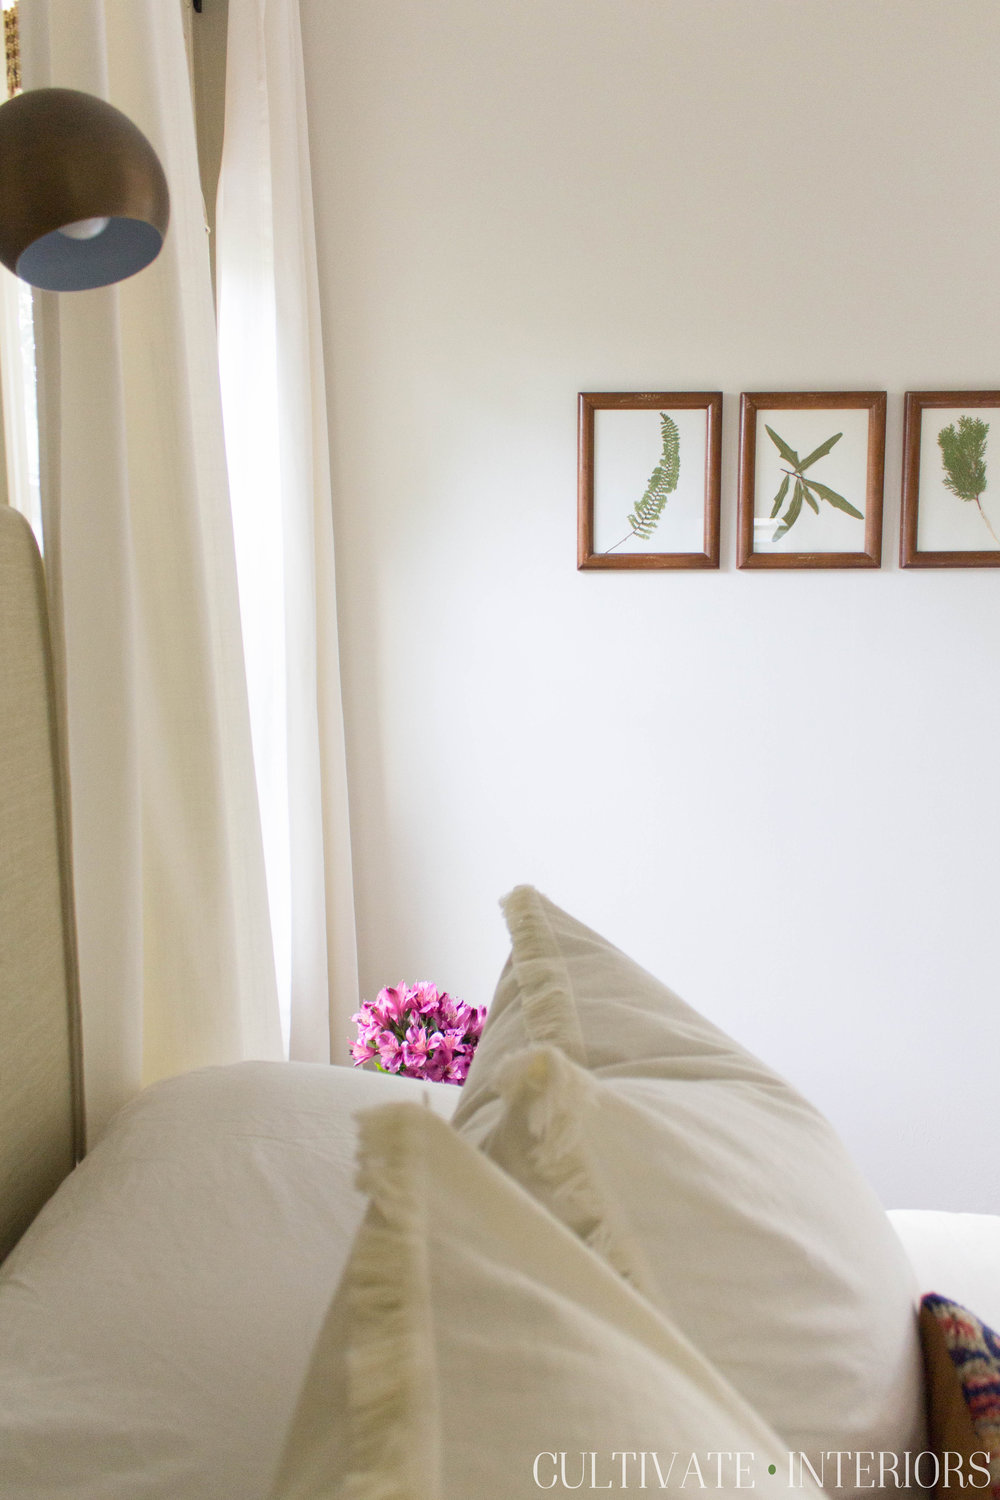 Eclectic natural bedroom with DIY pressed botanical art